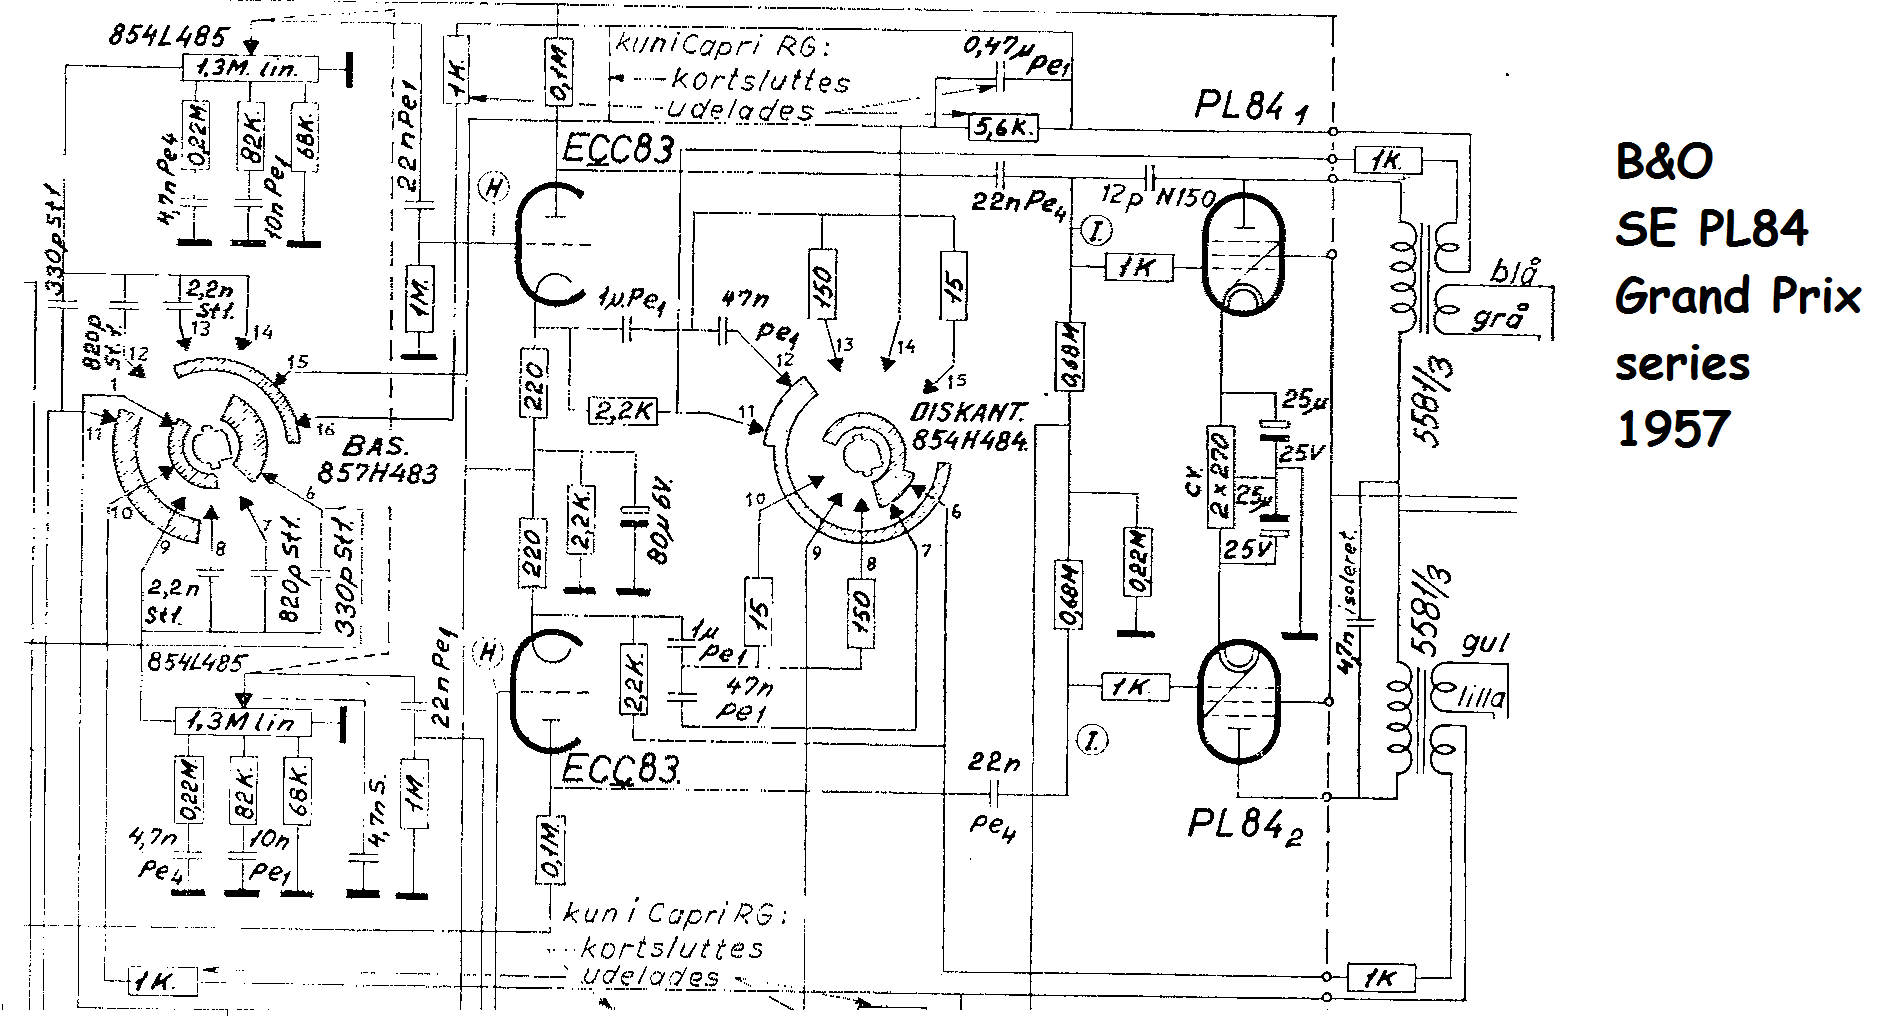 100 Amplifiers Part 4 1959 82 Lilienthal Engineering Carvin Vintage 16 Schematic Bo Grand Prix Pl84 Se Stereo